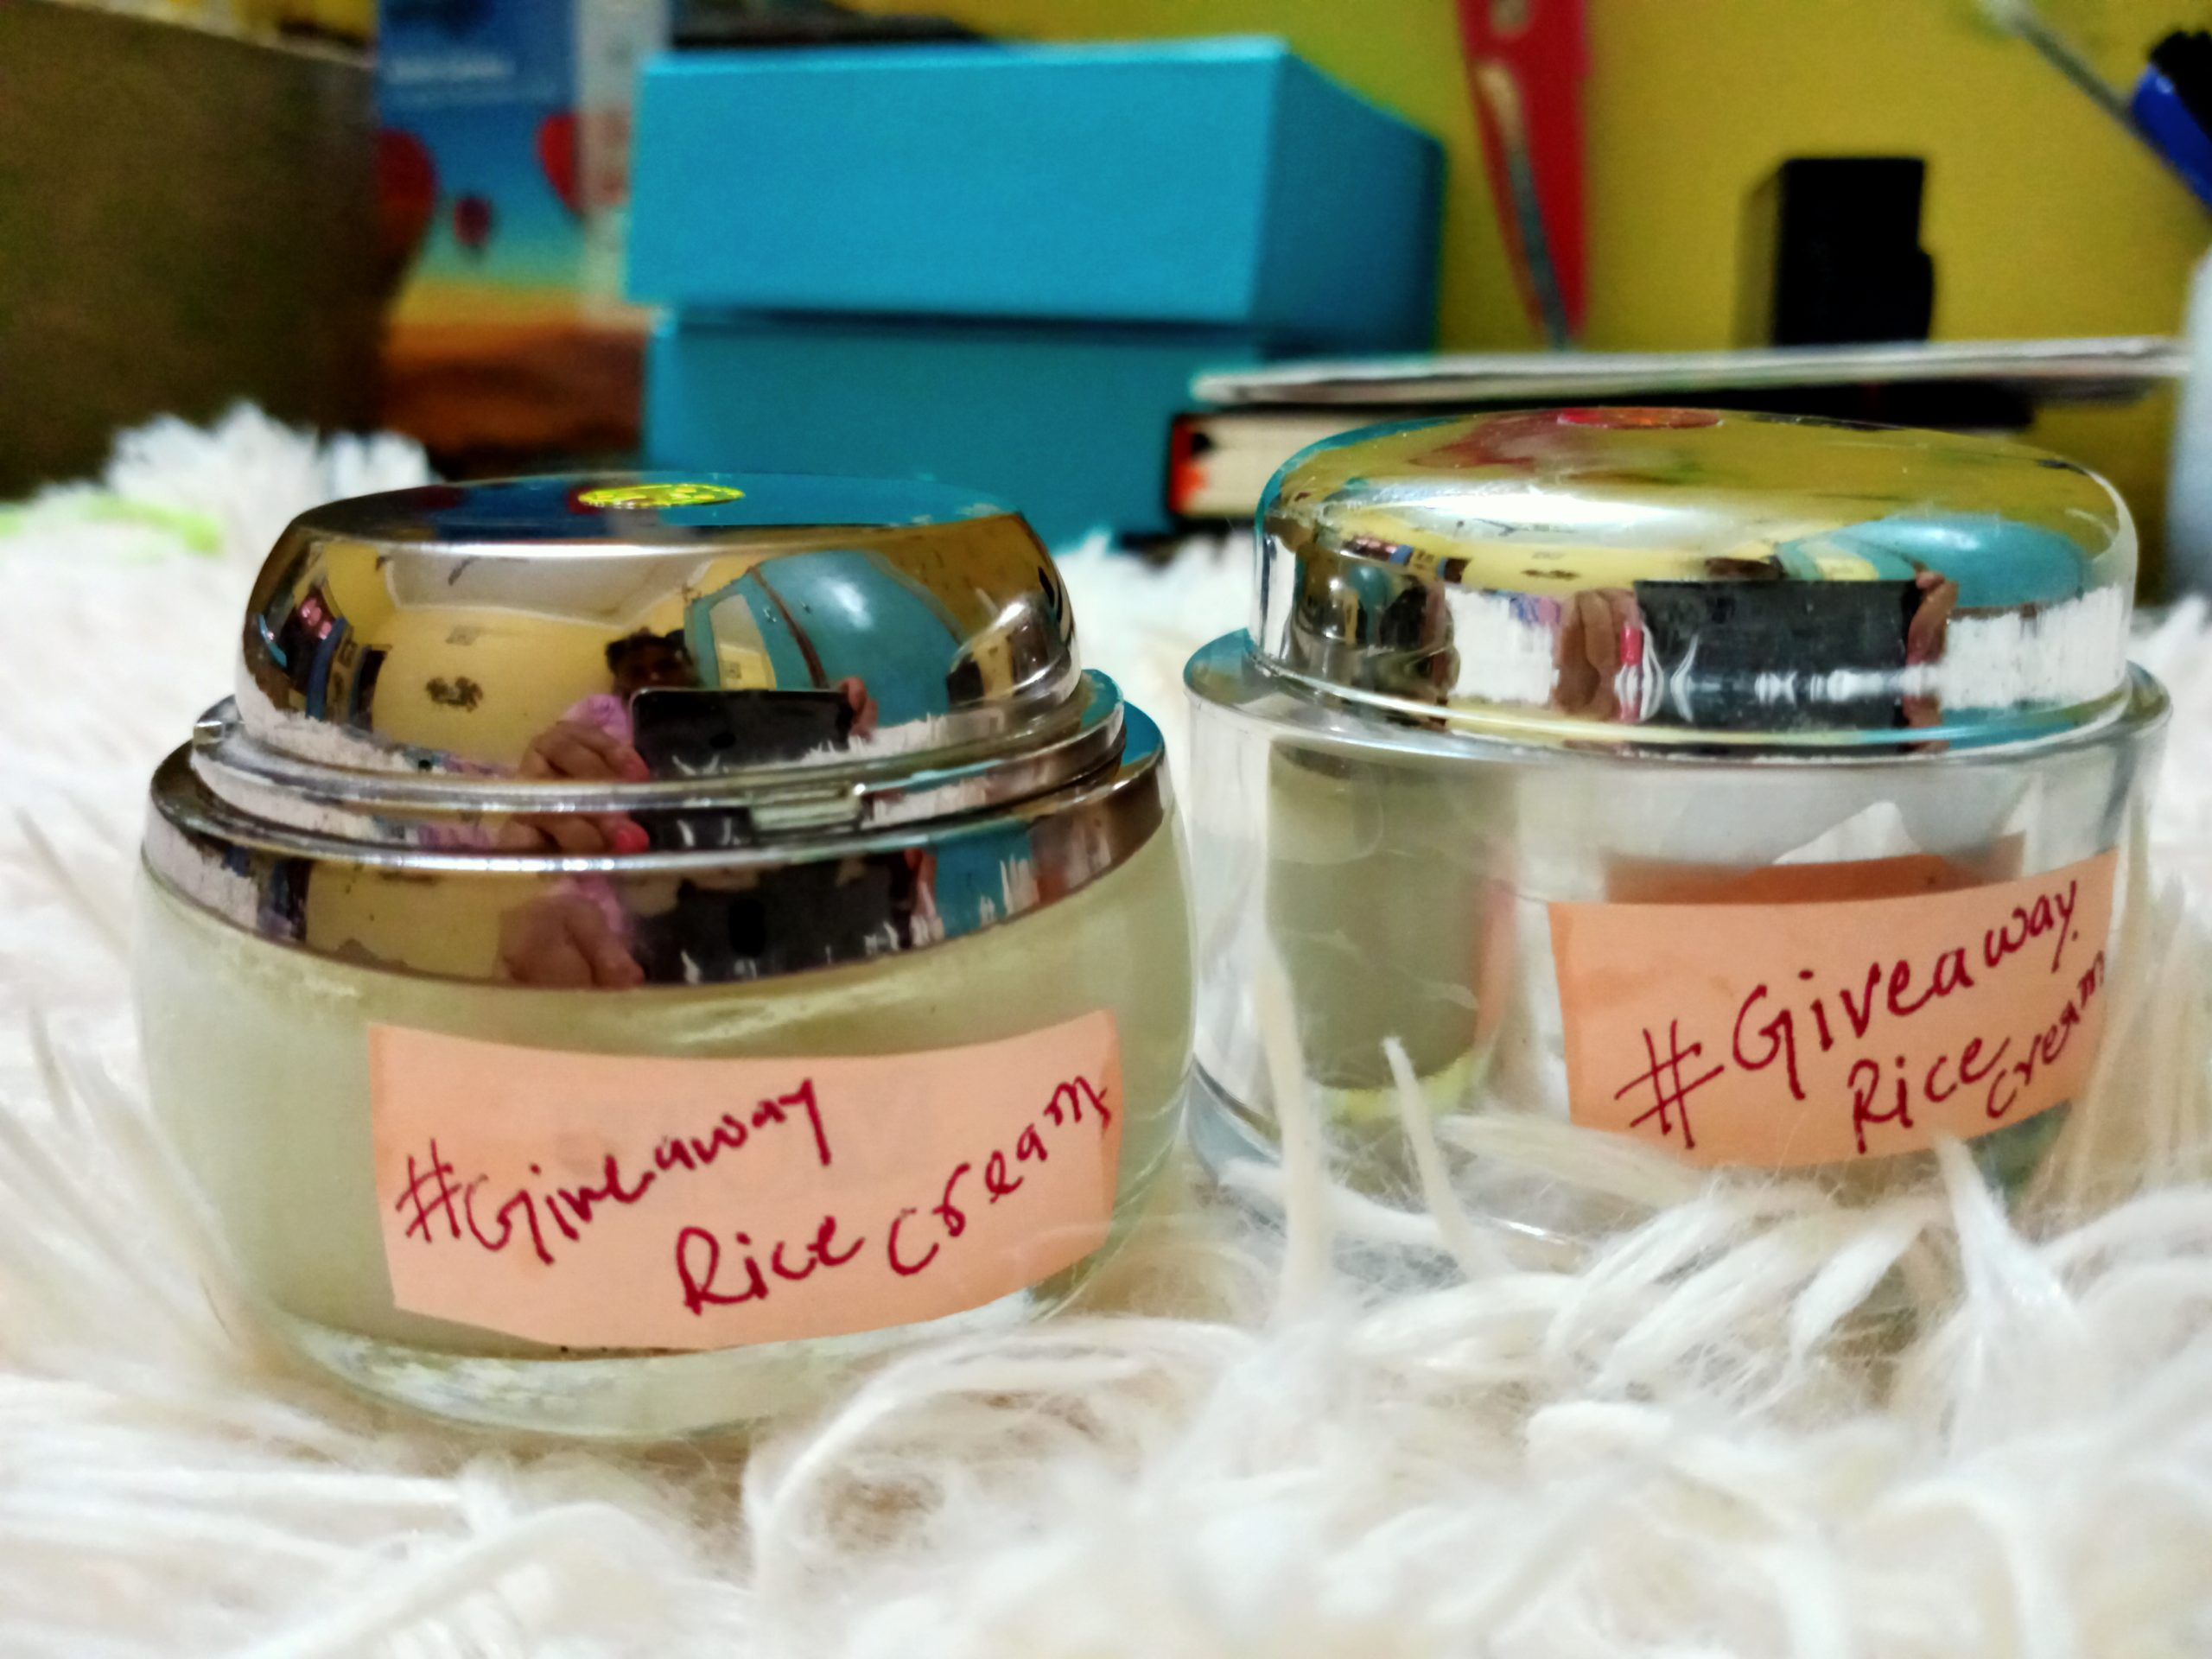 Rice cream is known for skin whitening, anti-aging, blemish free skin.